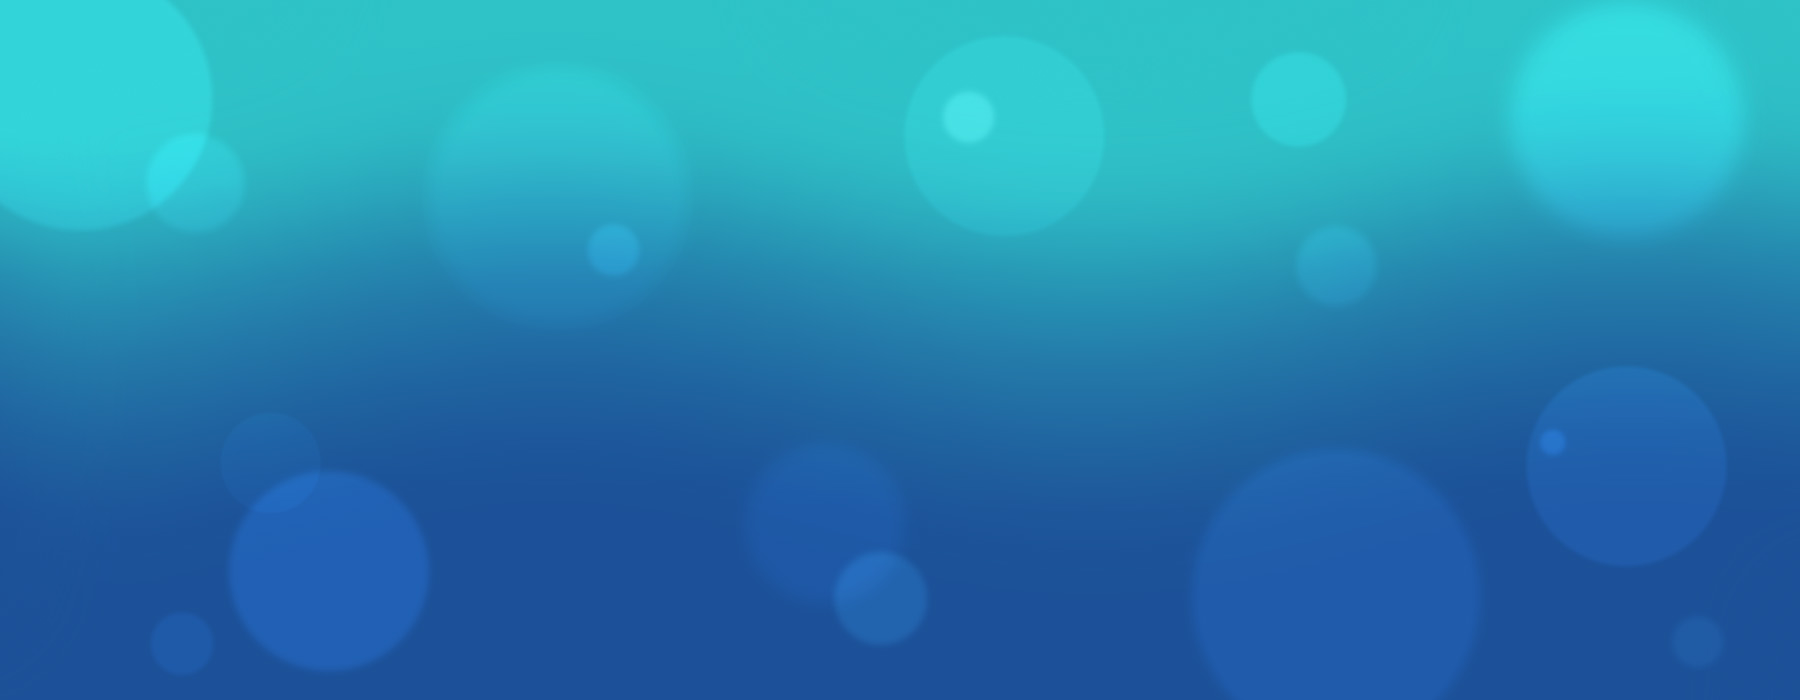 Blue Generic Background